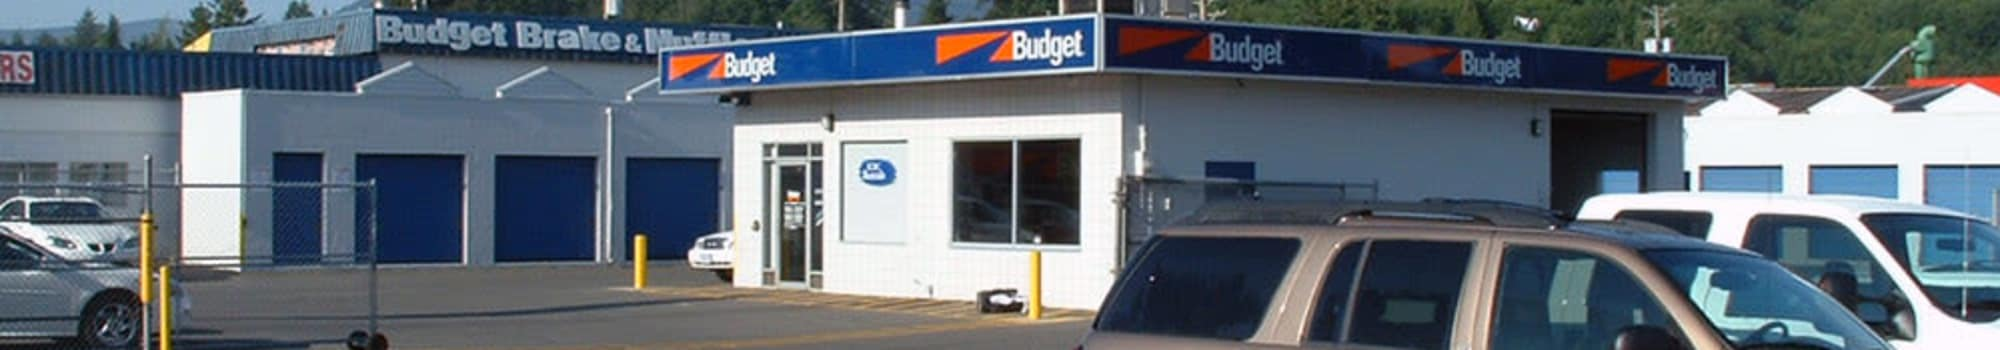 Budget Self Storage contact us